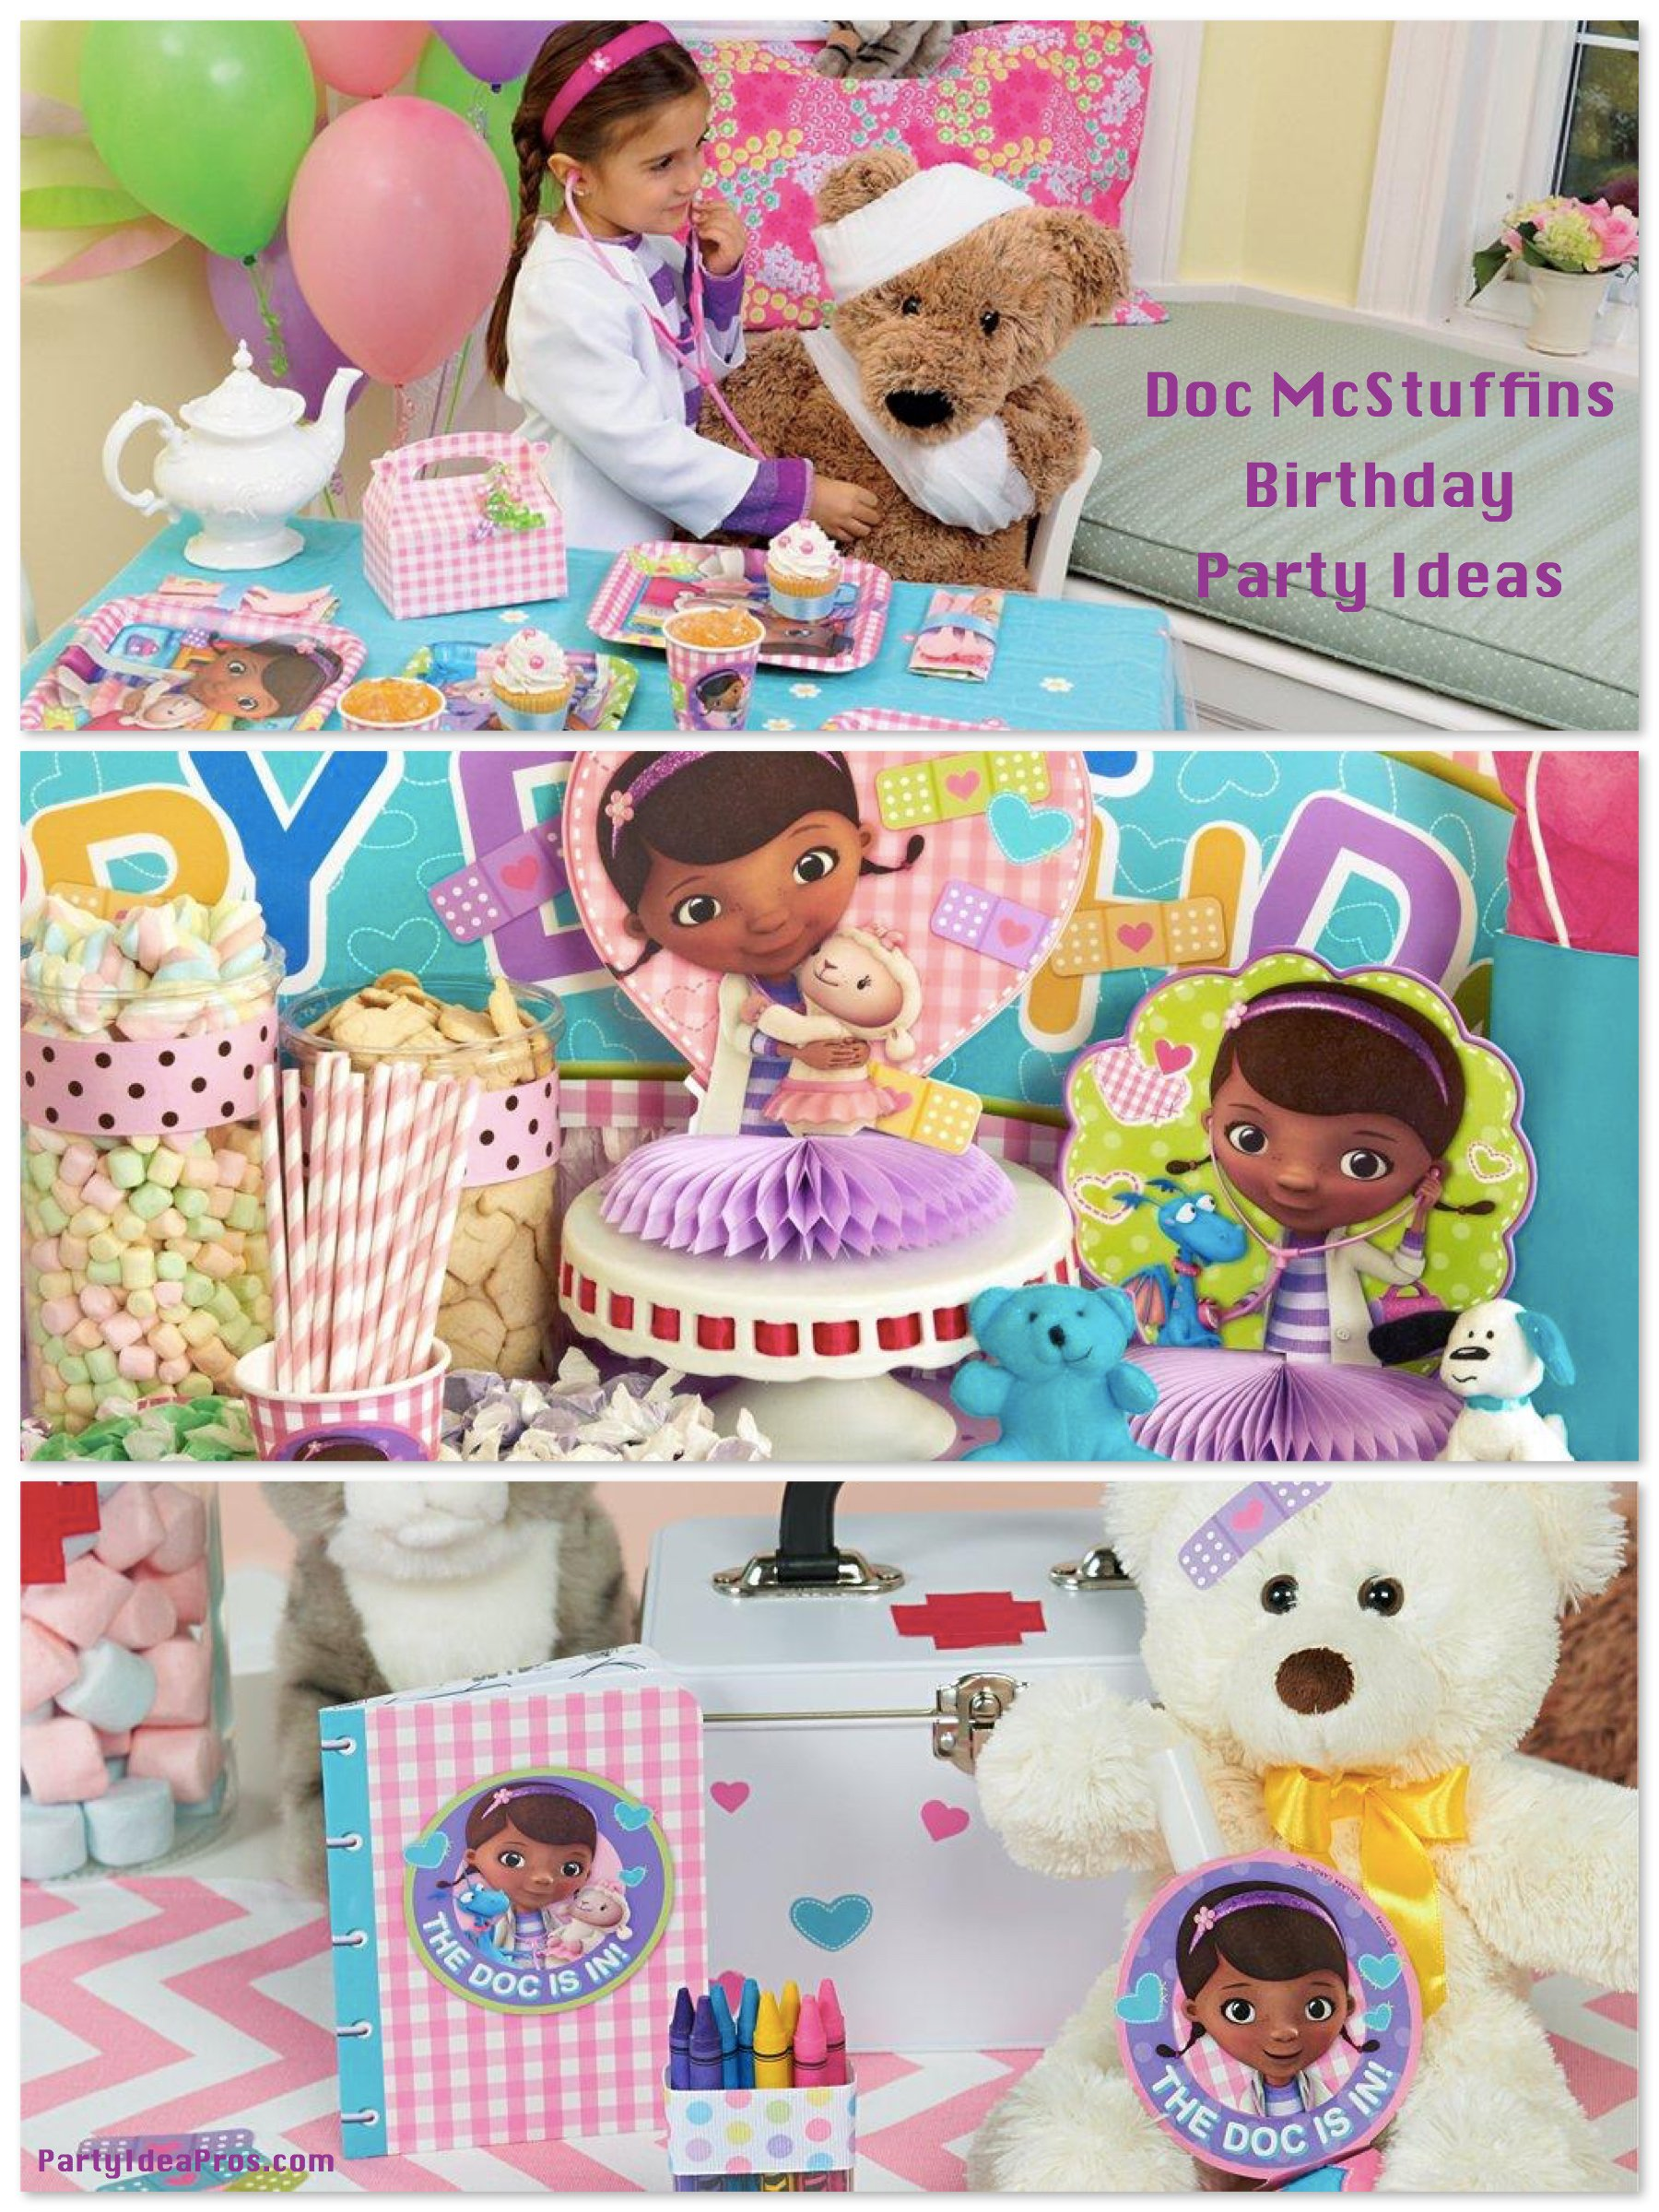 Doc McStuffins Birthday Party Planning, Ideas & Supplies ...